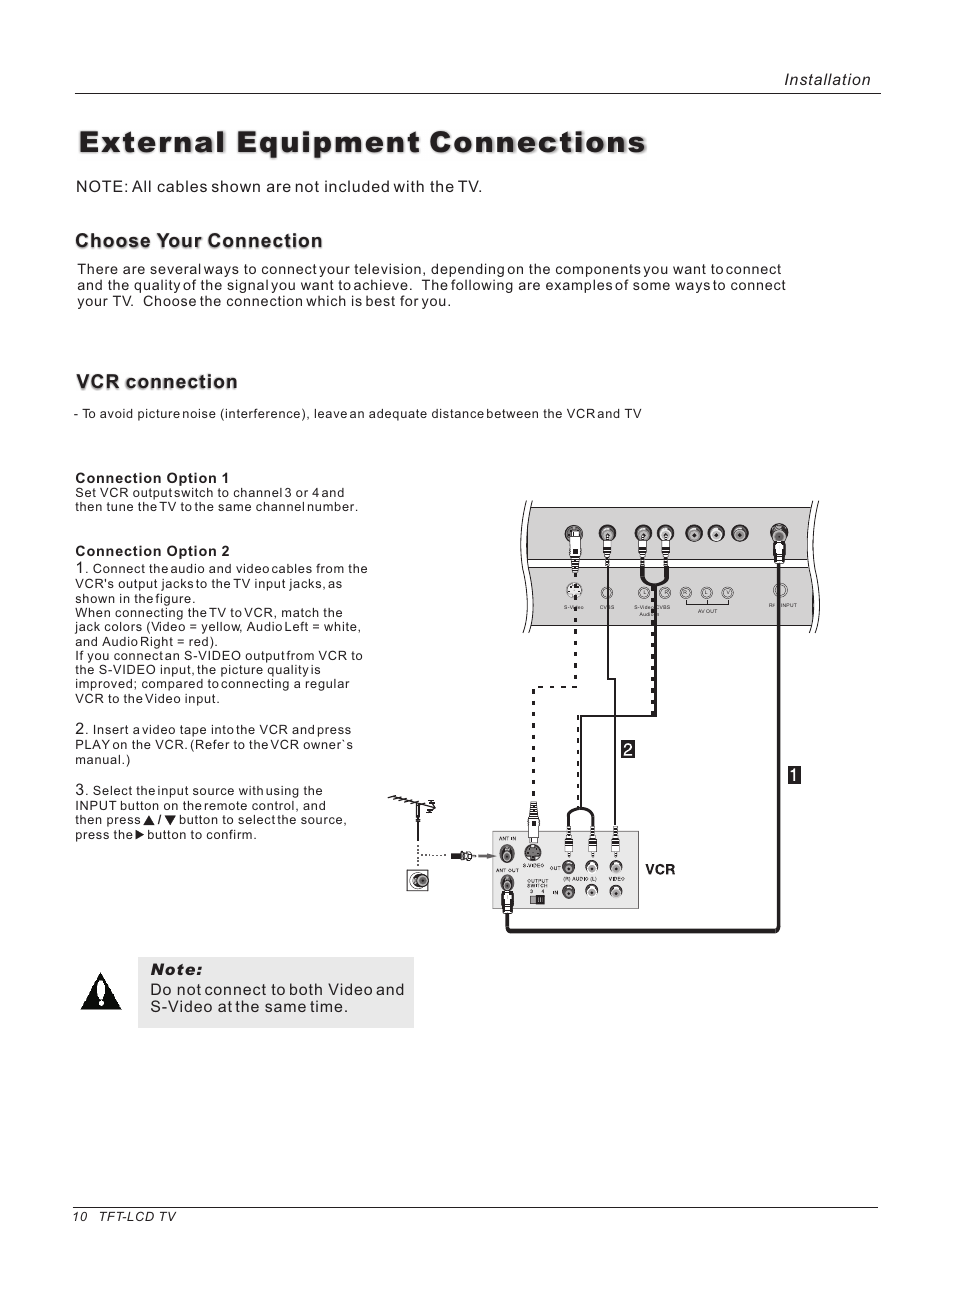 External equipment connections, Vcr connection, Choose your ...